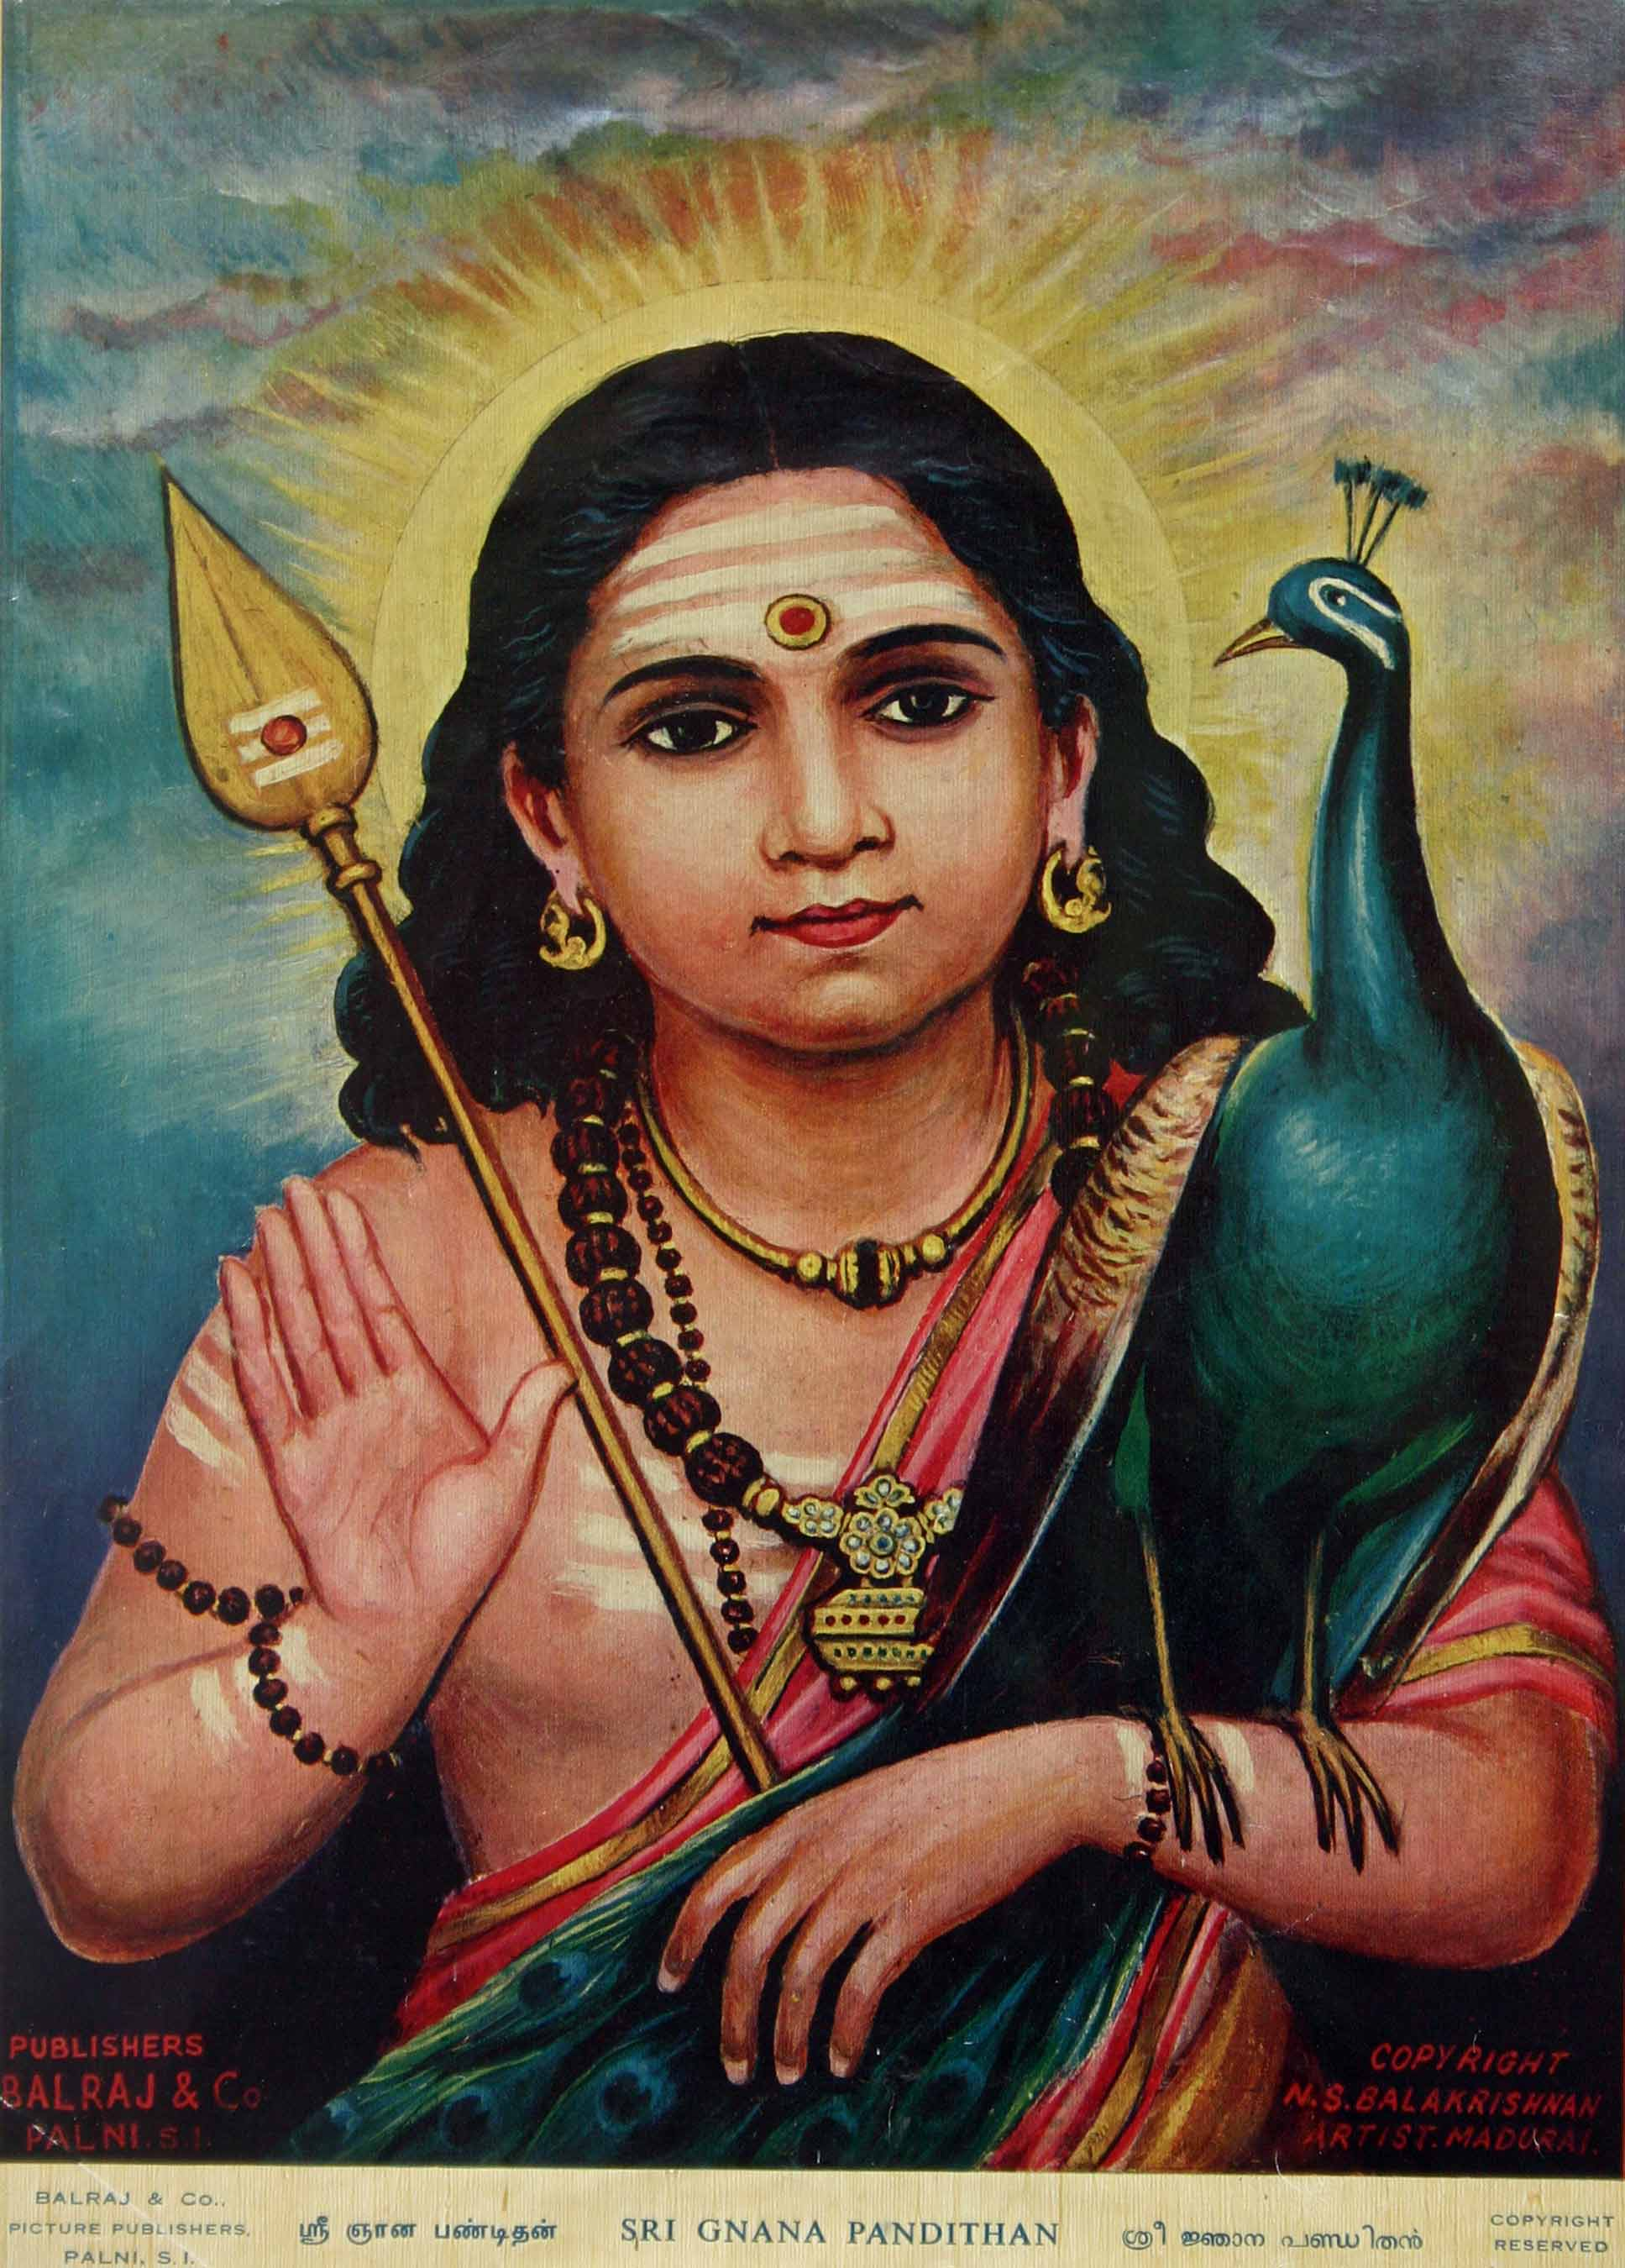 Śrī Jñāna Pandita: Lord Skanda-Murugan as Expositor of Gnosis with His symbols the Vēl Āyudha or Spear of Wisdom and His vehicle/totem the Peacock or Phoenix. Behind Him shines the brilliance of the rising sun representing the brilliantly awakened state (bodhi) of the Jñāni or Comprehensor.